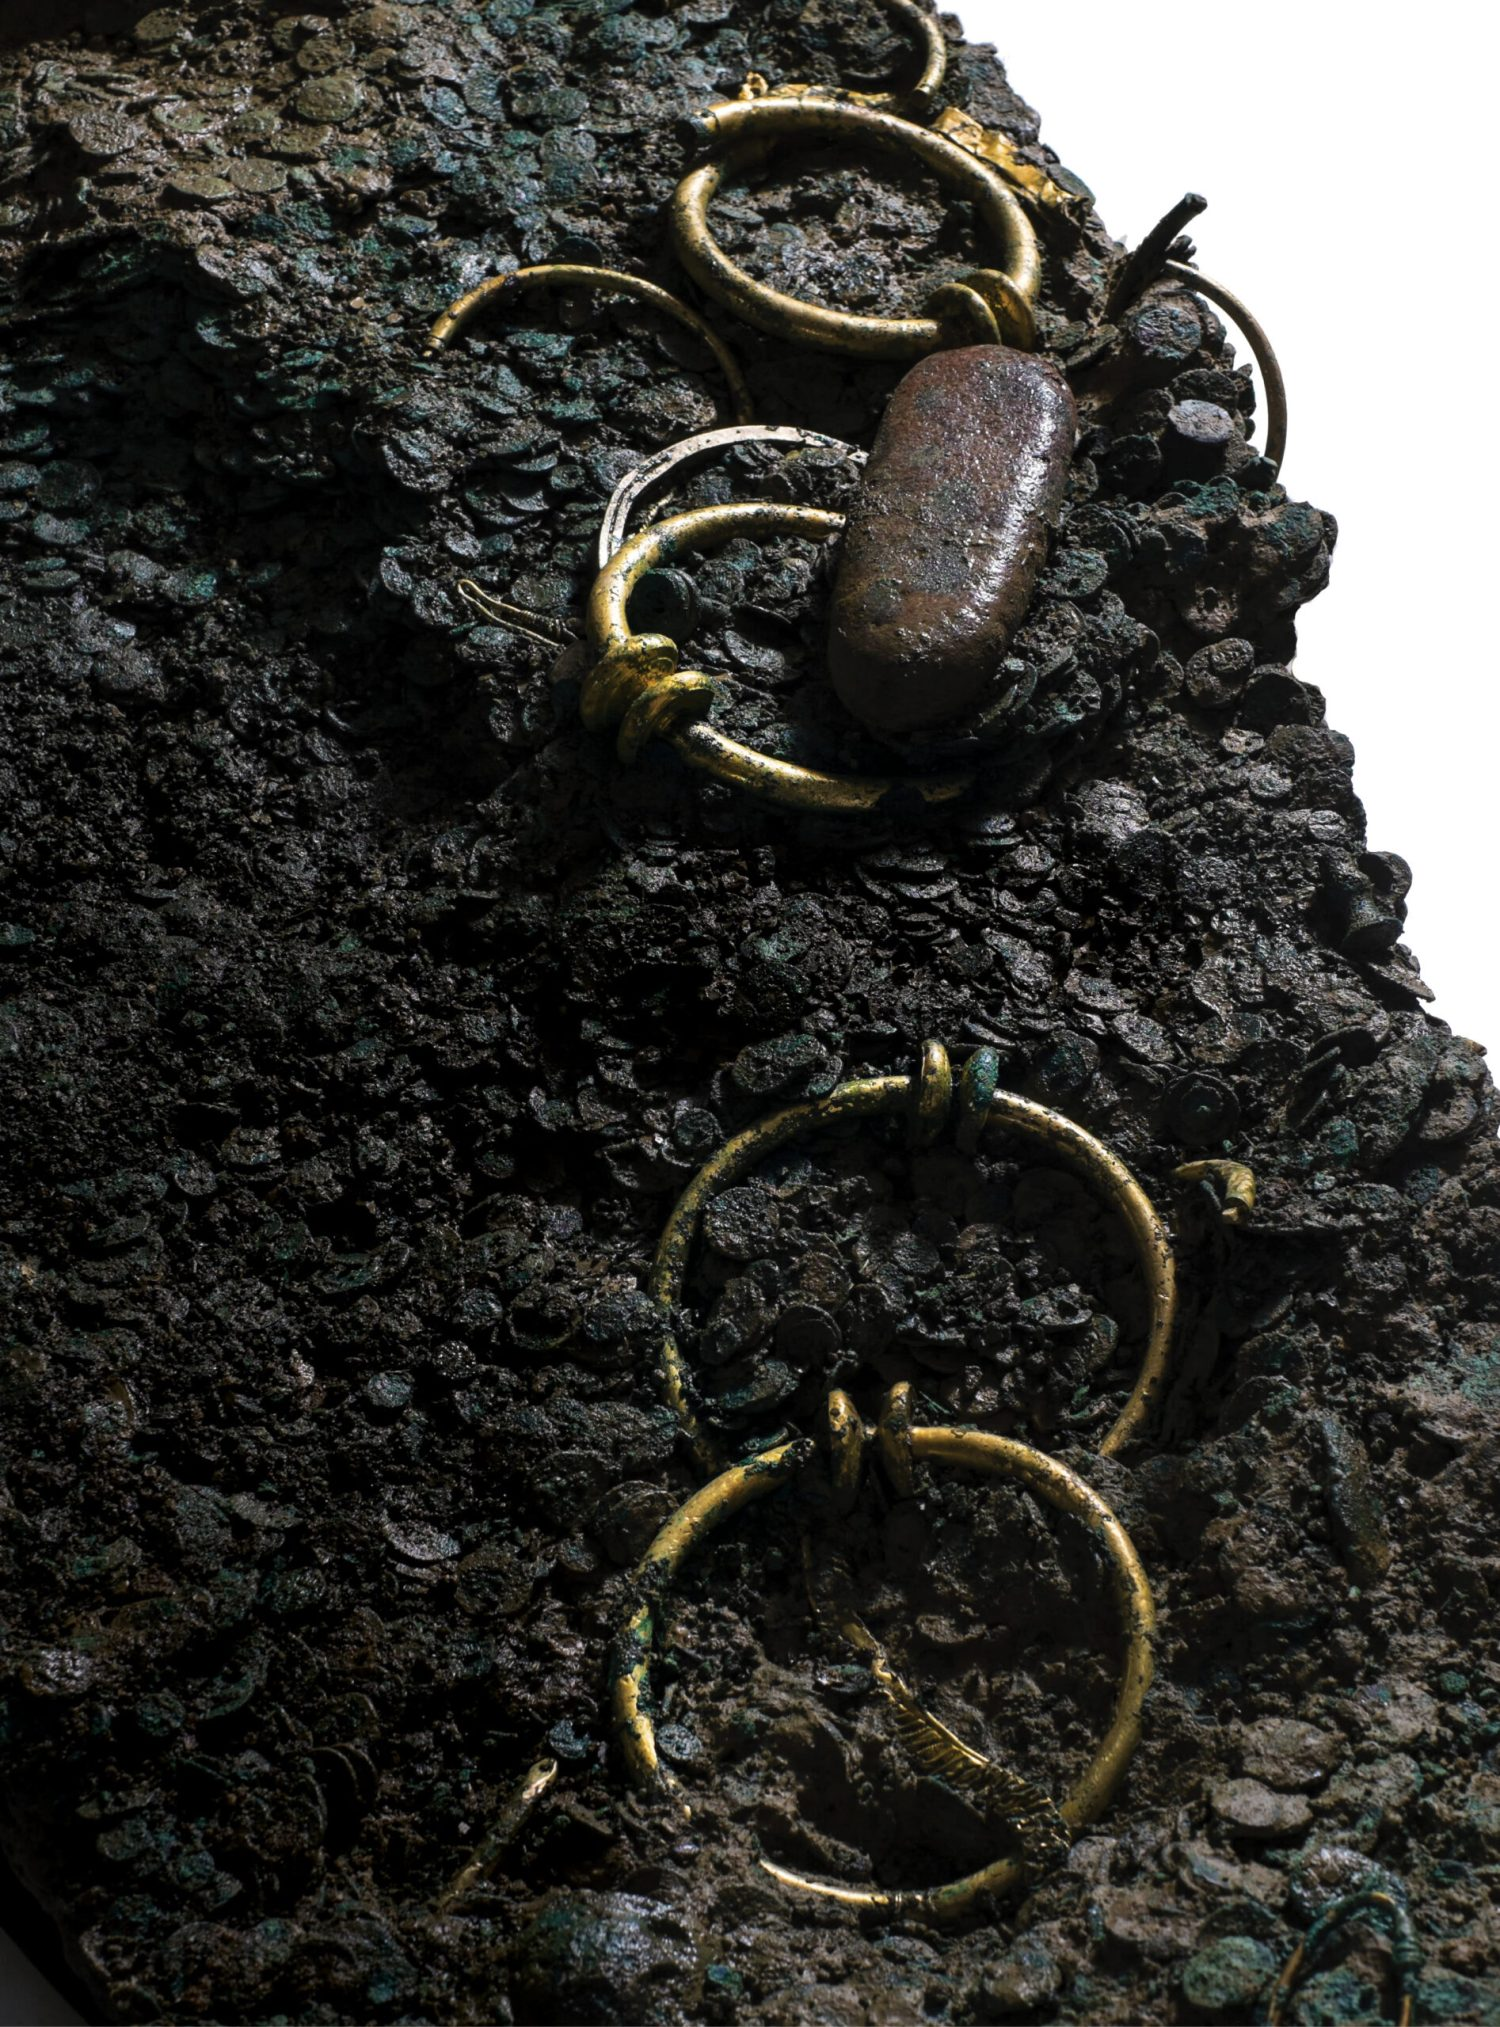 Above This photo shows just a portion of Le Câtillon II, the largest coin hoard yet found in the British Isles, which was discovered in Jersey in 2012. As well as more than 69,000 Celtic coins, the corroded mass included gold and silver objects, traces of textiles, and other intriguing artefacts.